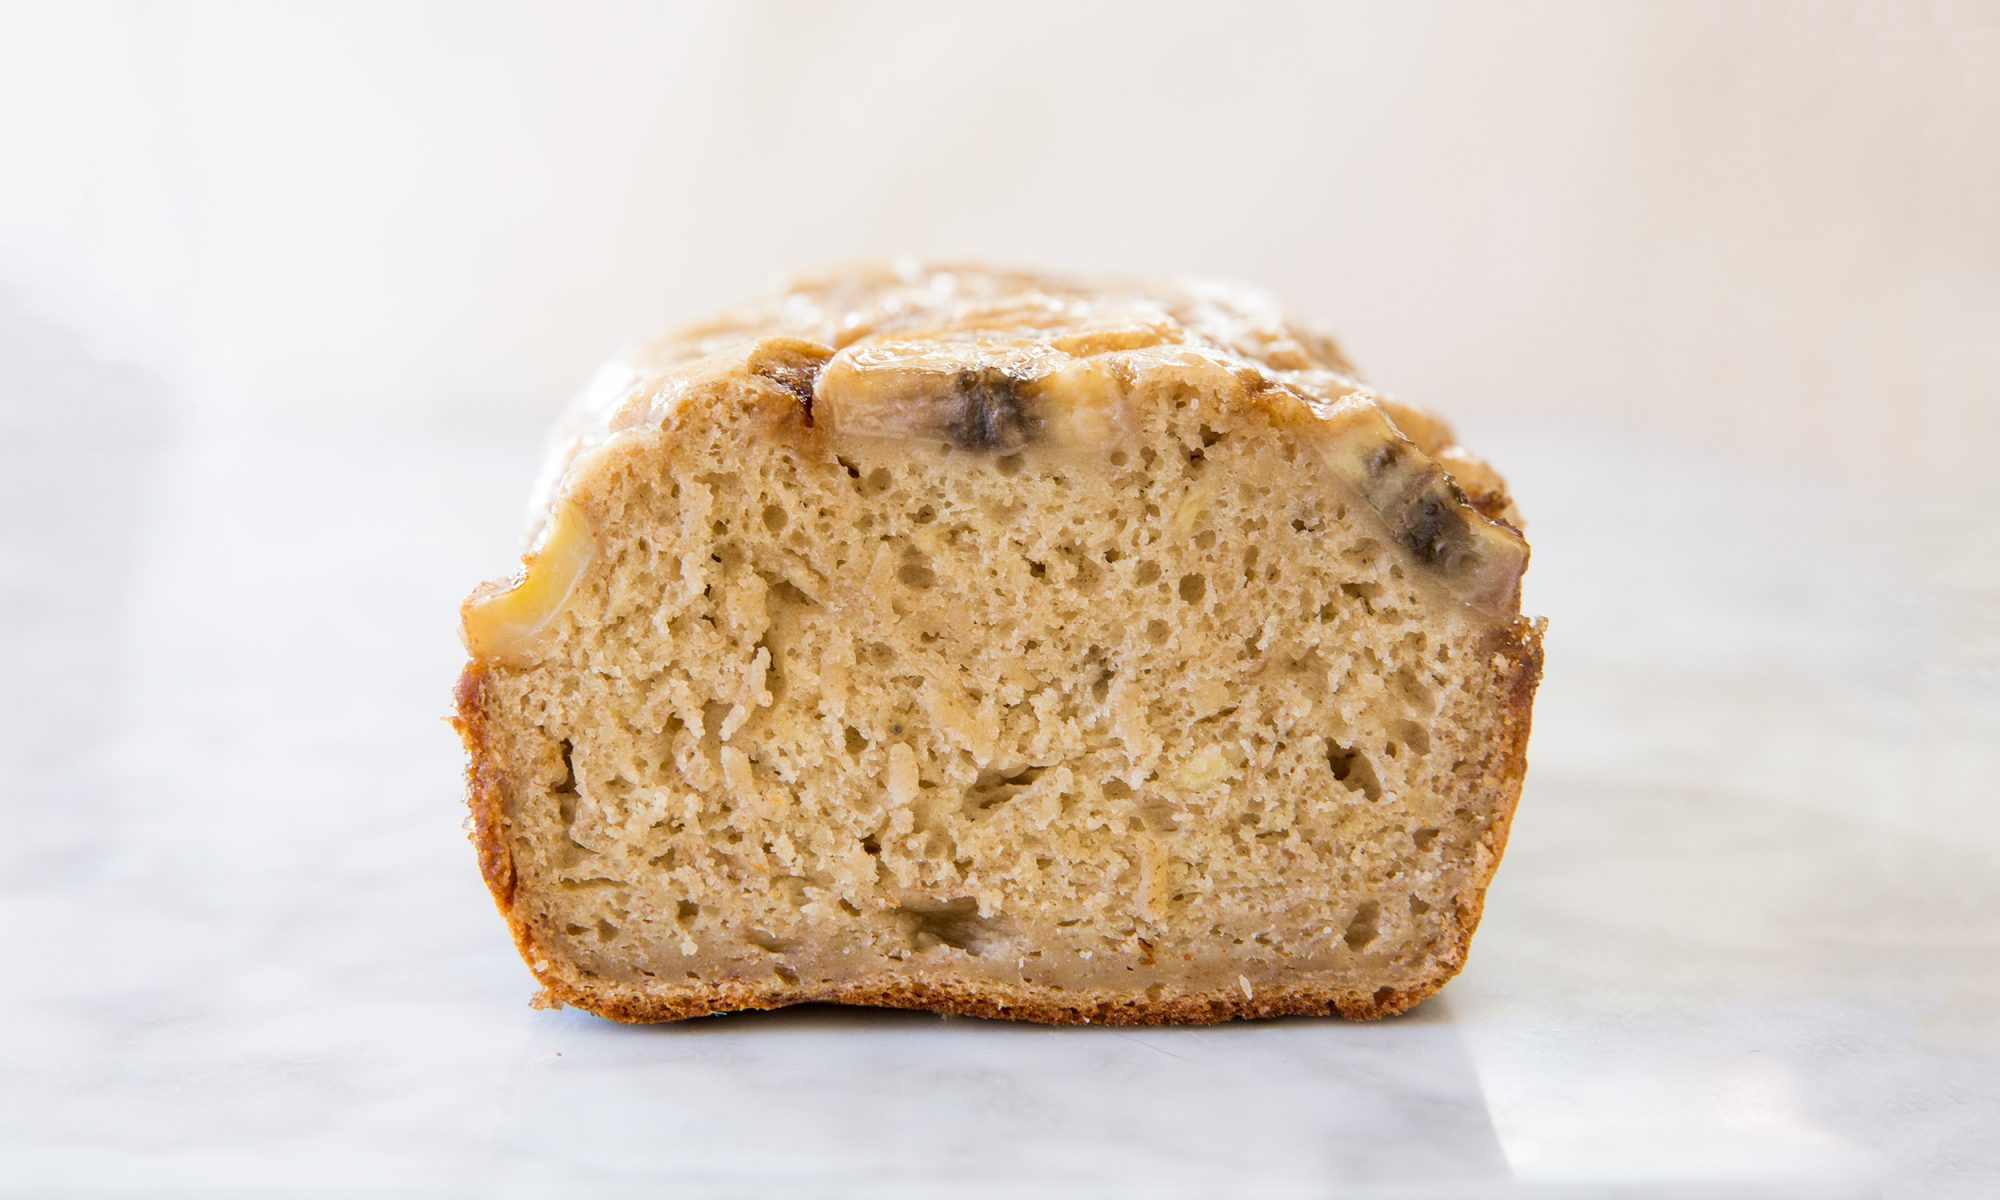 EC: This 3-Ingredient Banana Bread Recipe Is Almost Too Easy